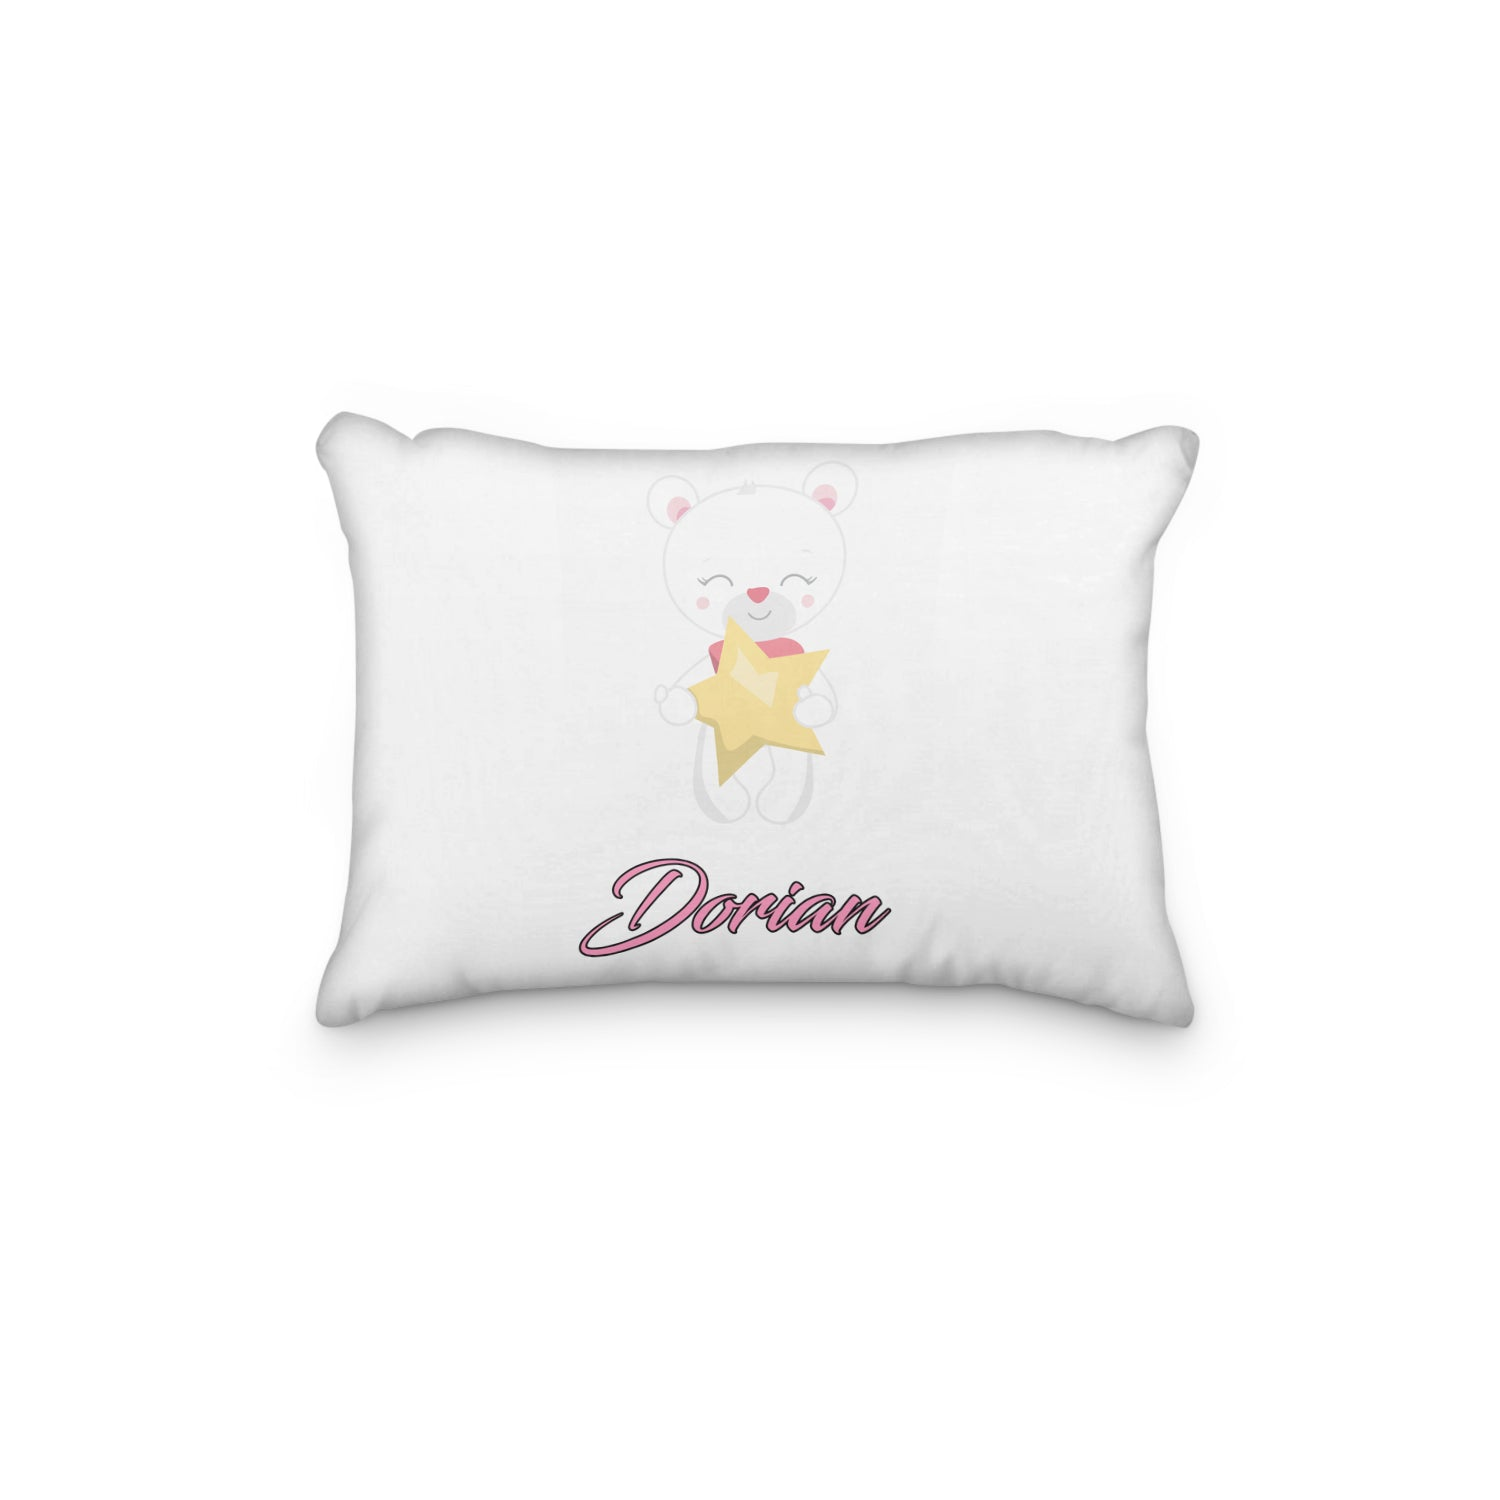 Bear Standing with Star Personalized Pillowcase - Incandescently - Glitter Sparkle Throw Pillows - Farmhouse Decor